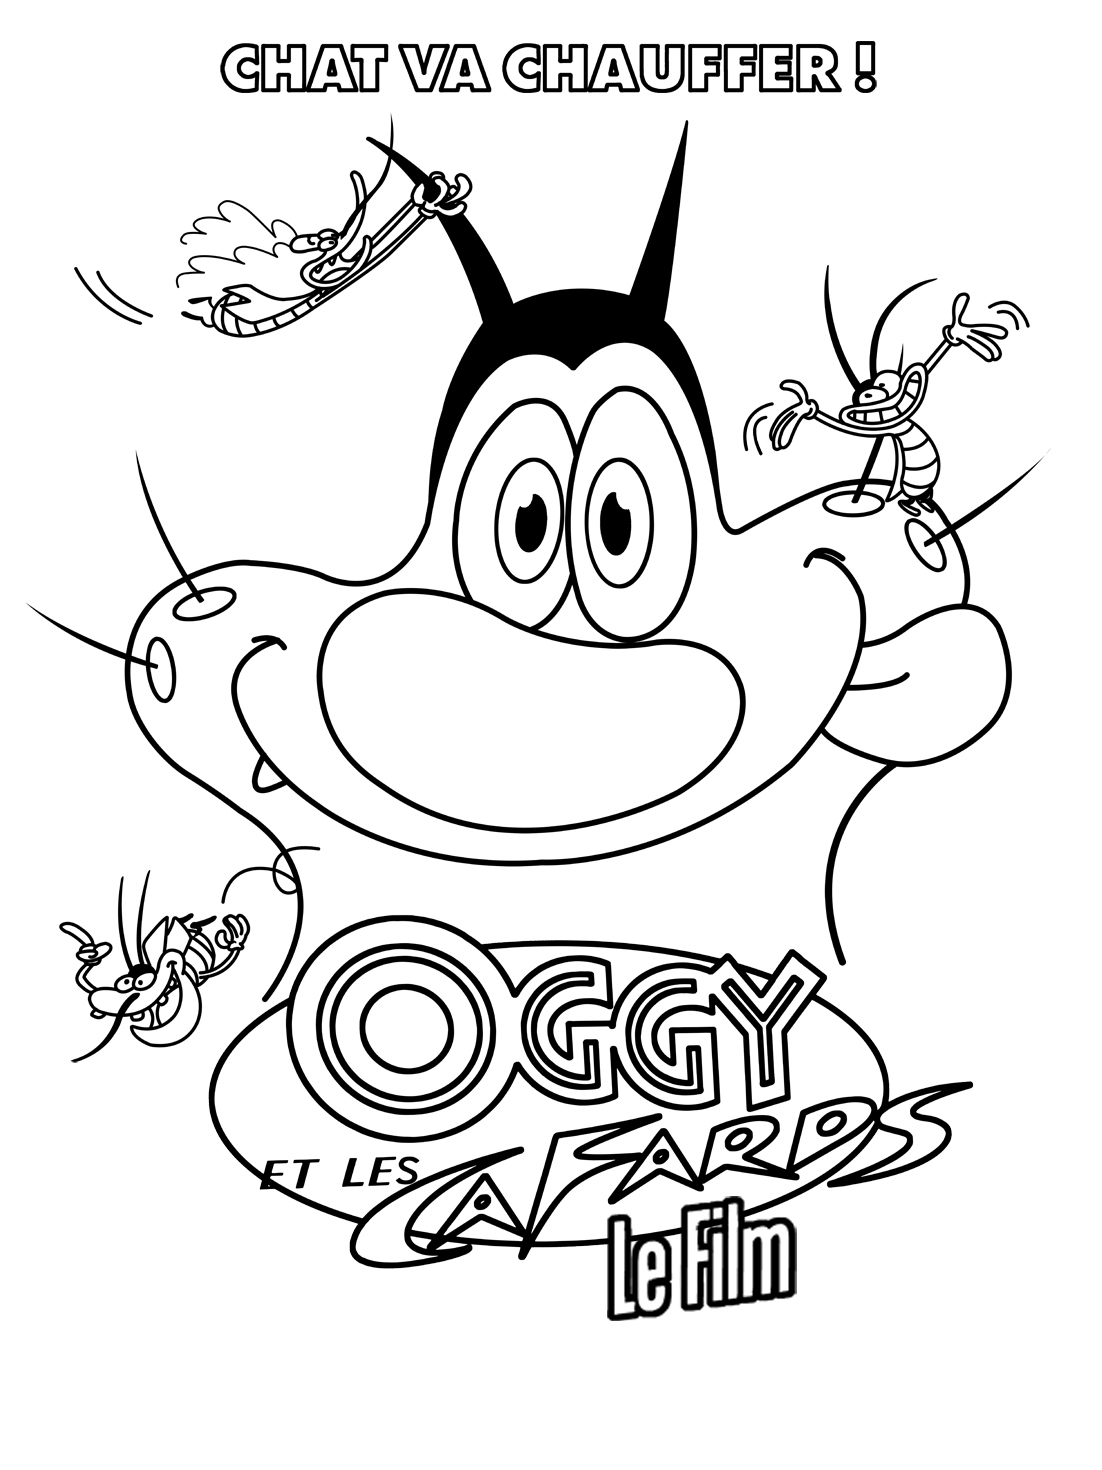 Oggy and the cockroaches free to color for children - Oggy And The ...